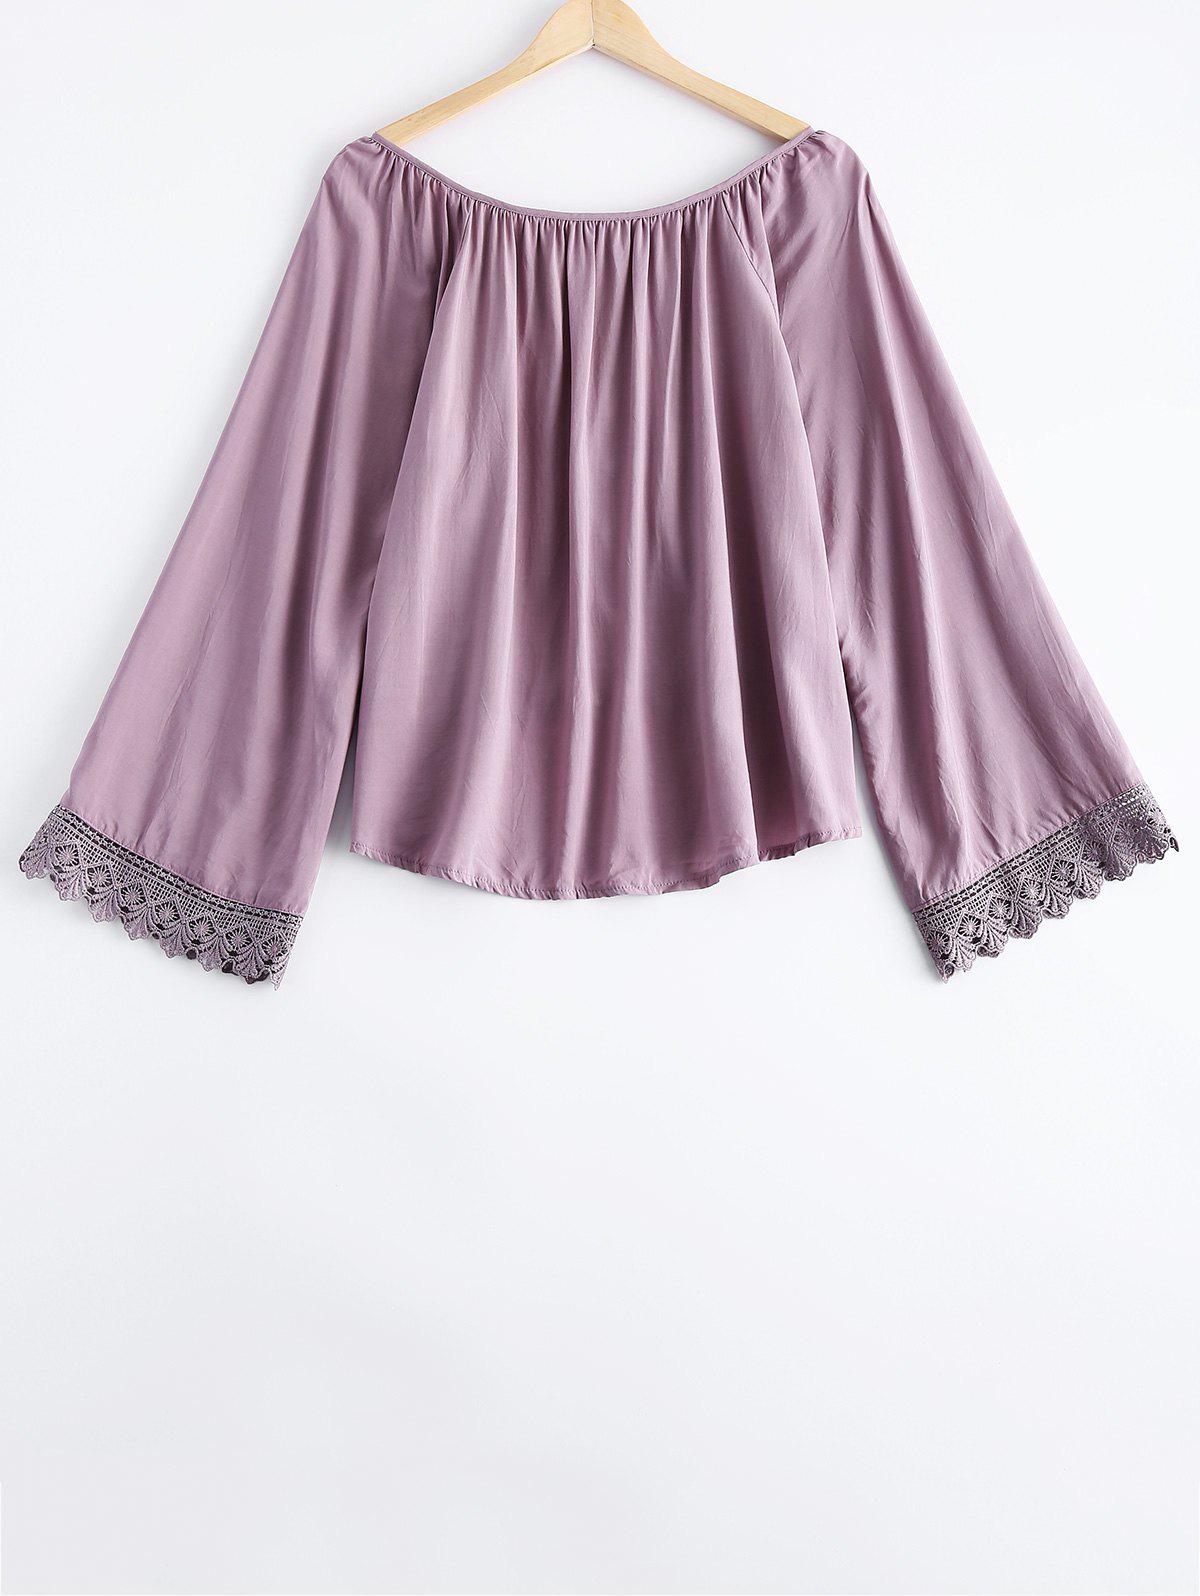 Simple Scoop Neck Button Lace Long Sleeves Blouse For Women - LIGHT PURPLE ONE SIZE(FIT SIZE XS TO M)